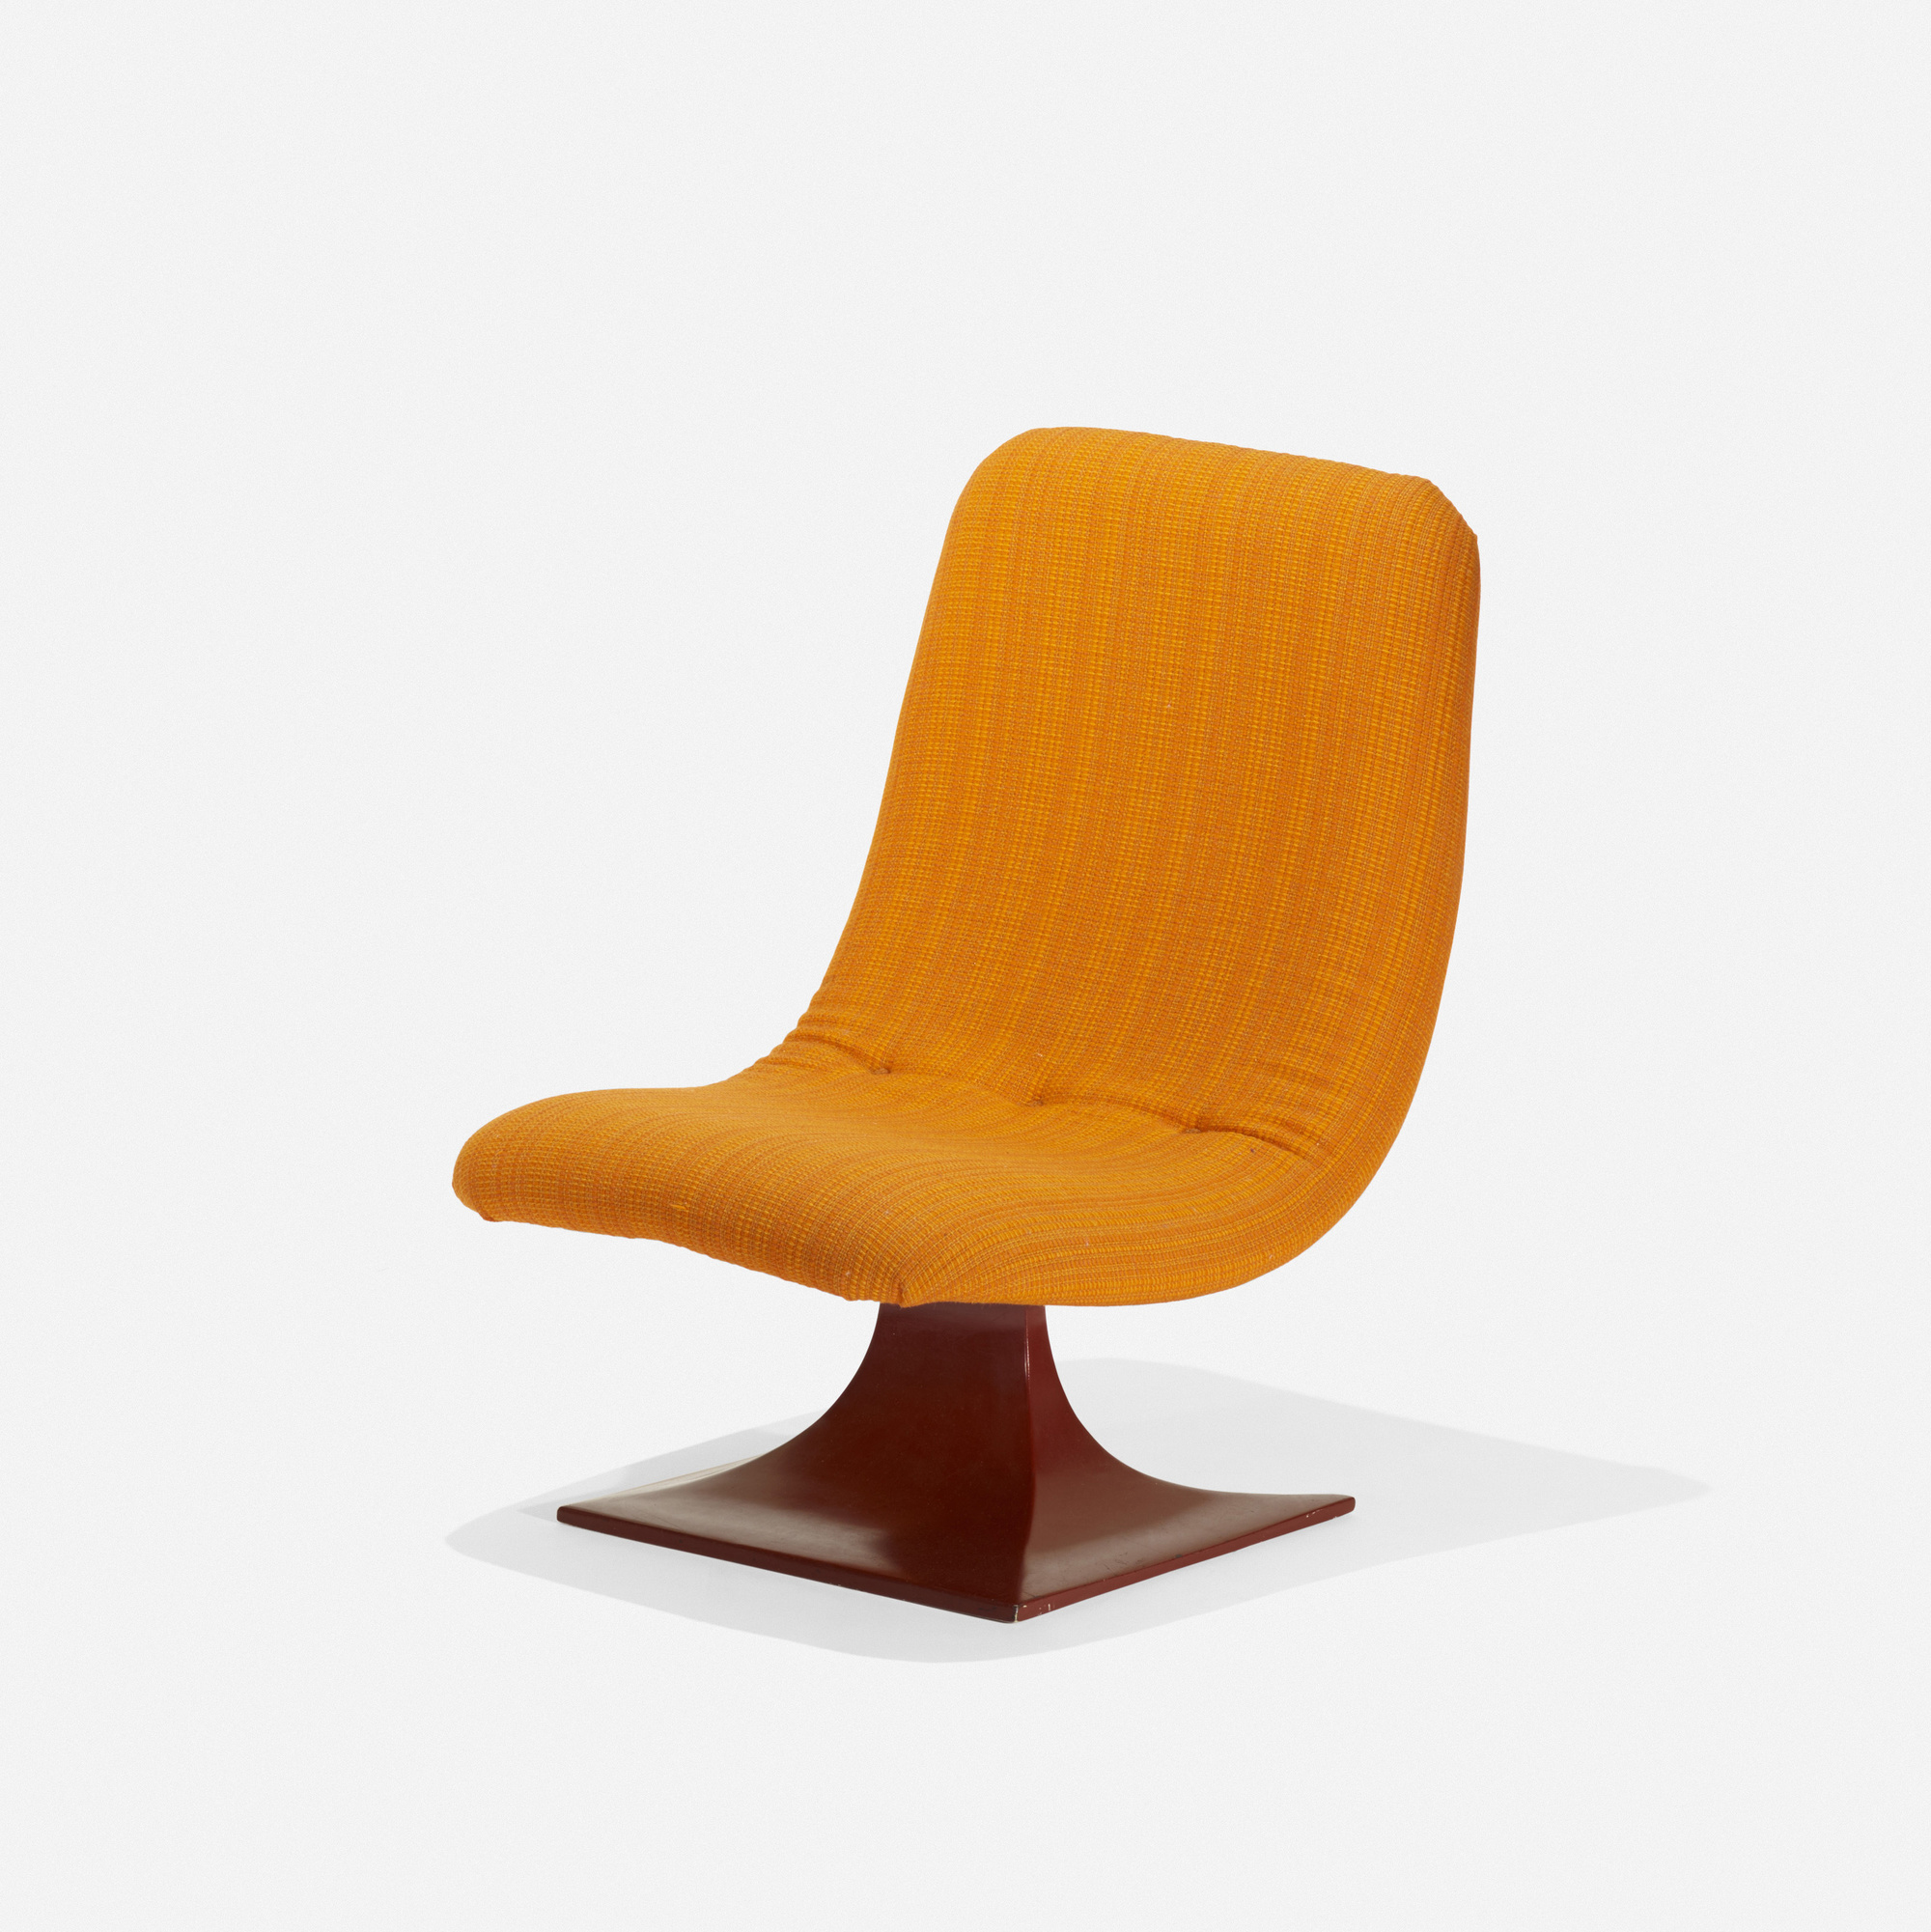 231: Milo Baughman / prototype lounge chair (1 of 3)